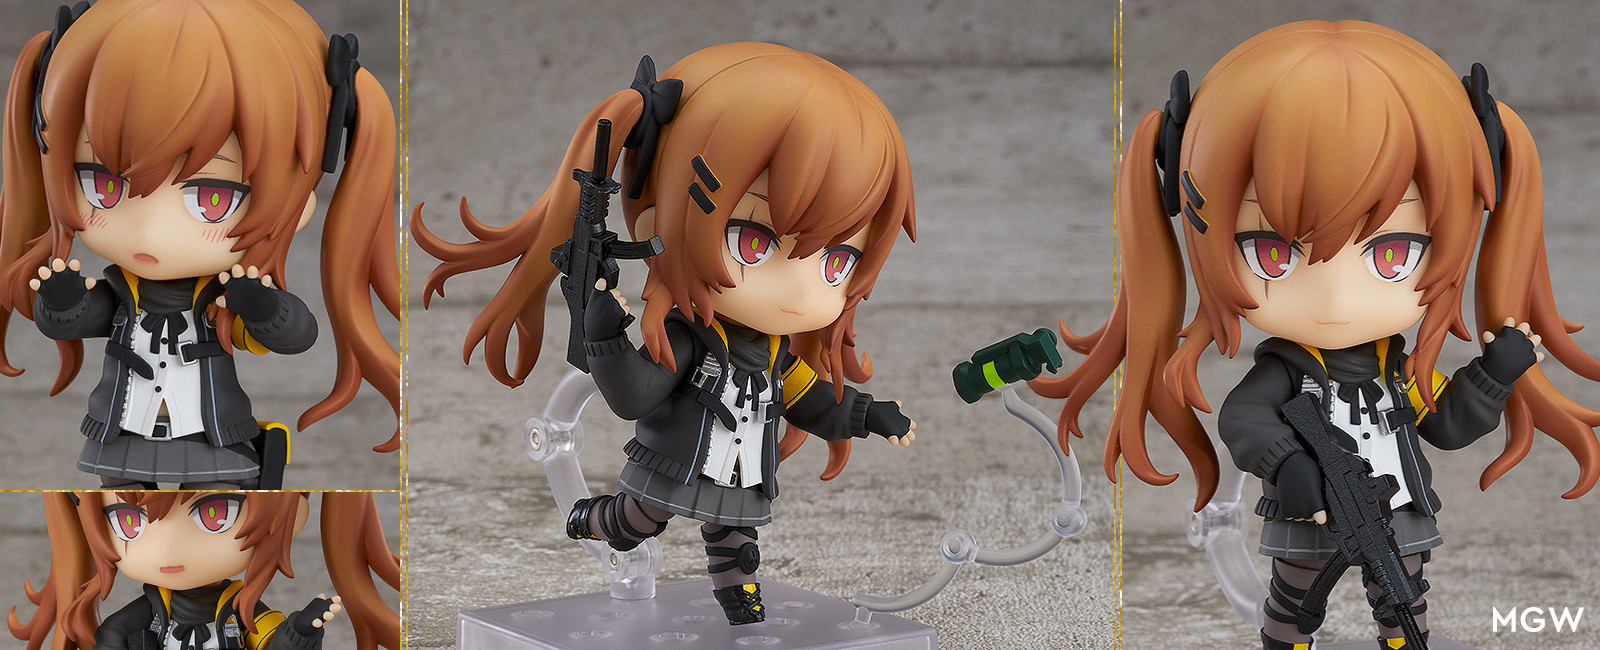 Nendoroid UMP9 from Girls Frontline